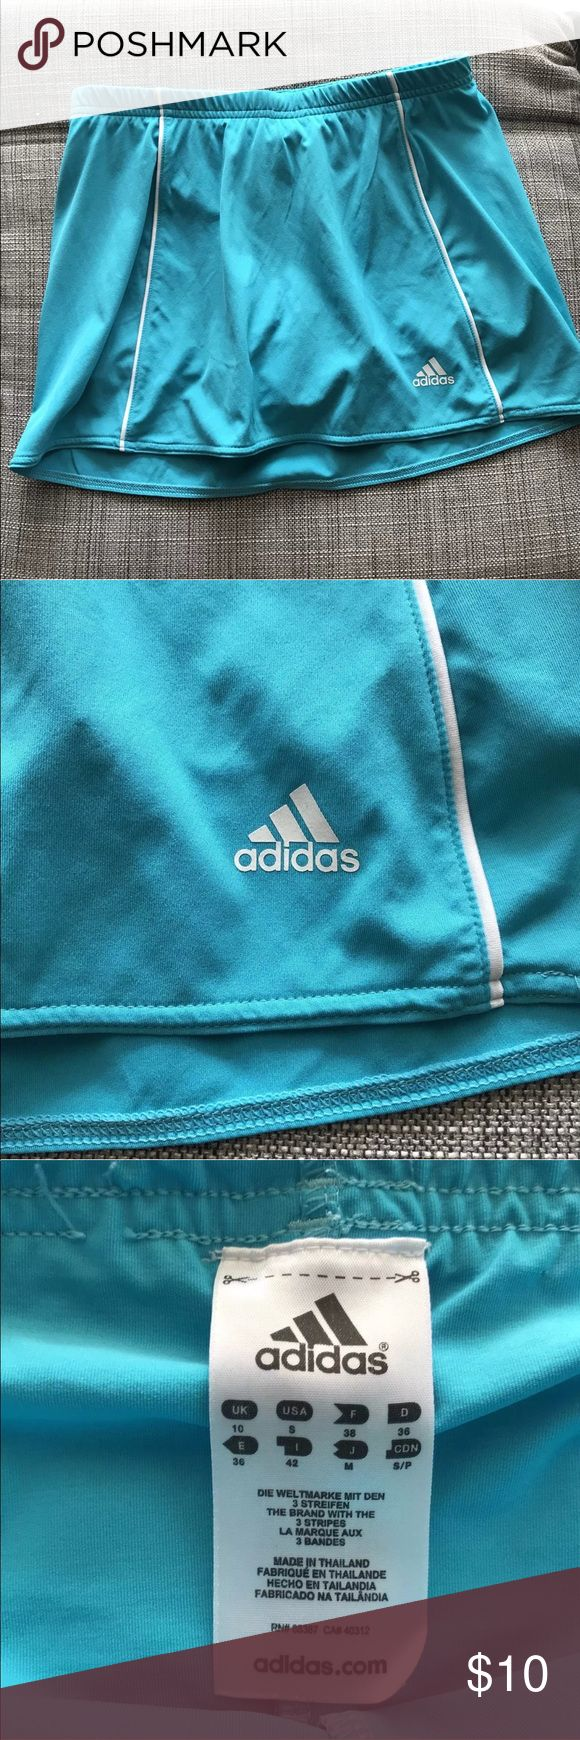 Adidas short skirt blue color tennis Sporty This is a colorful Pre-loved skirt with no visible stains or rips. This skirt is clean and ready to wear.   For measurement look at the pictures.   If any question, please, let me know. adidas Skirts Mini